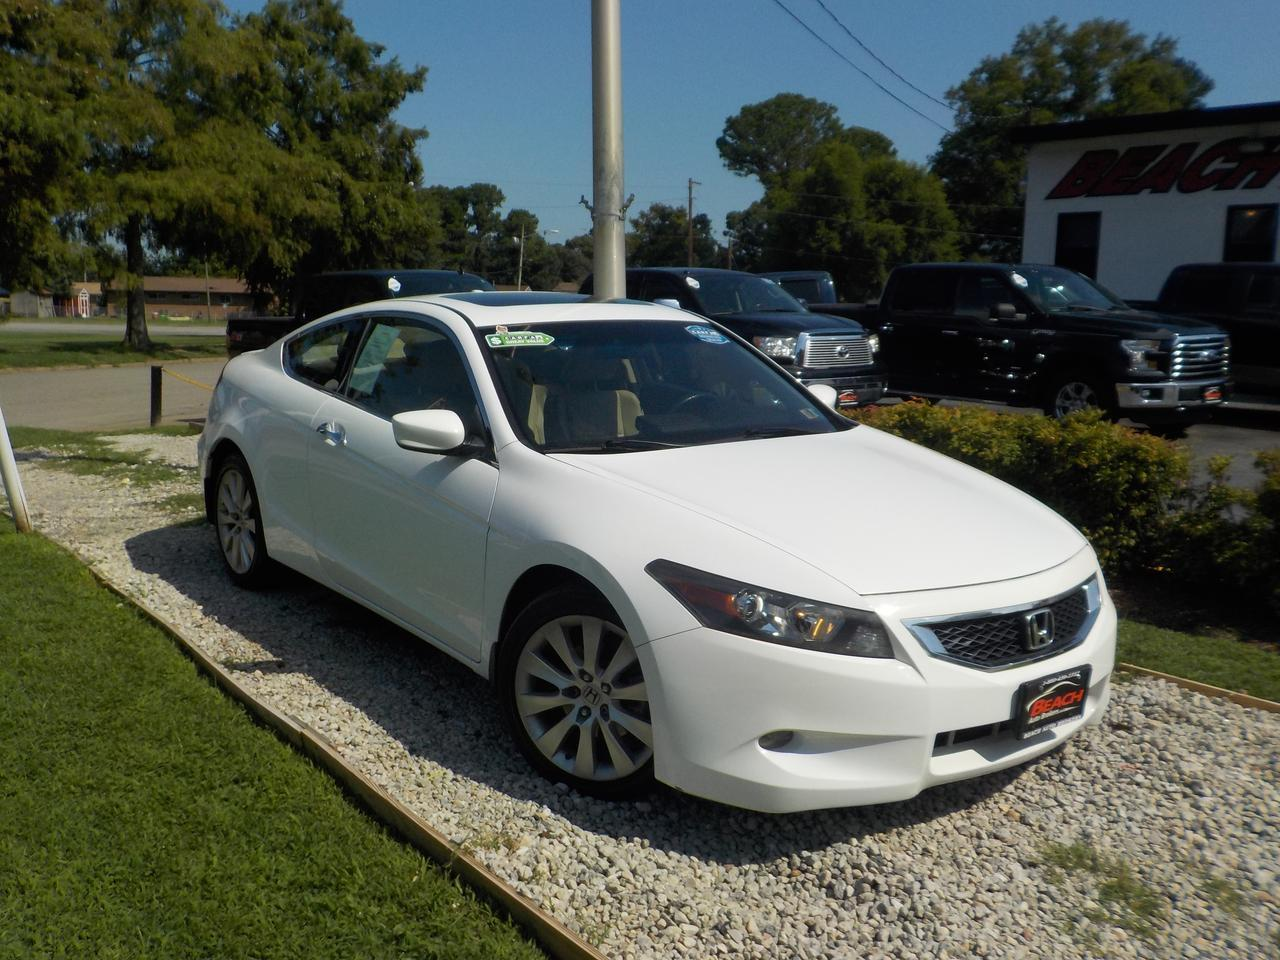 2010 HONDA ACCORD EX-L COUPE, WARRANTY, LEATHER, SUNROOF, MYCONNECT, SATELLITE RADIO!